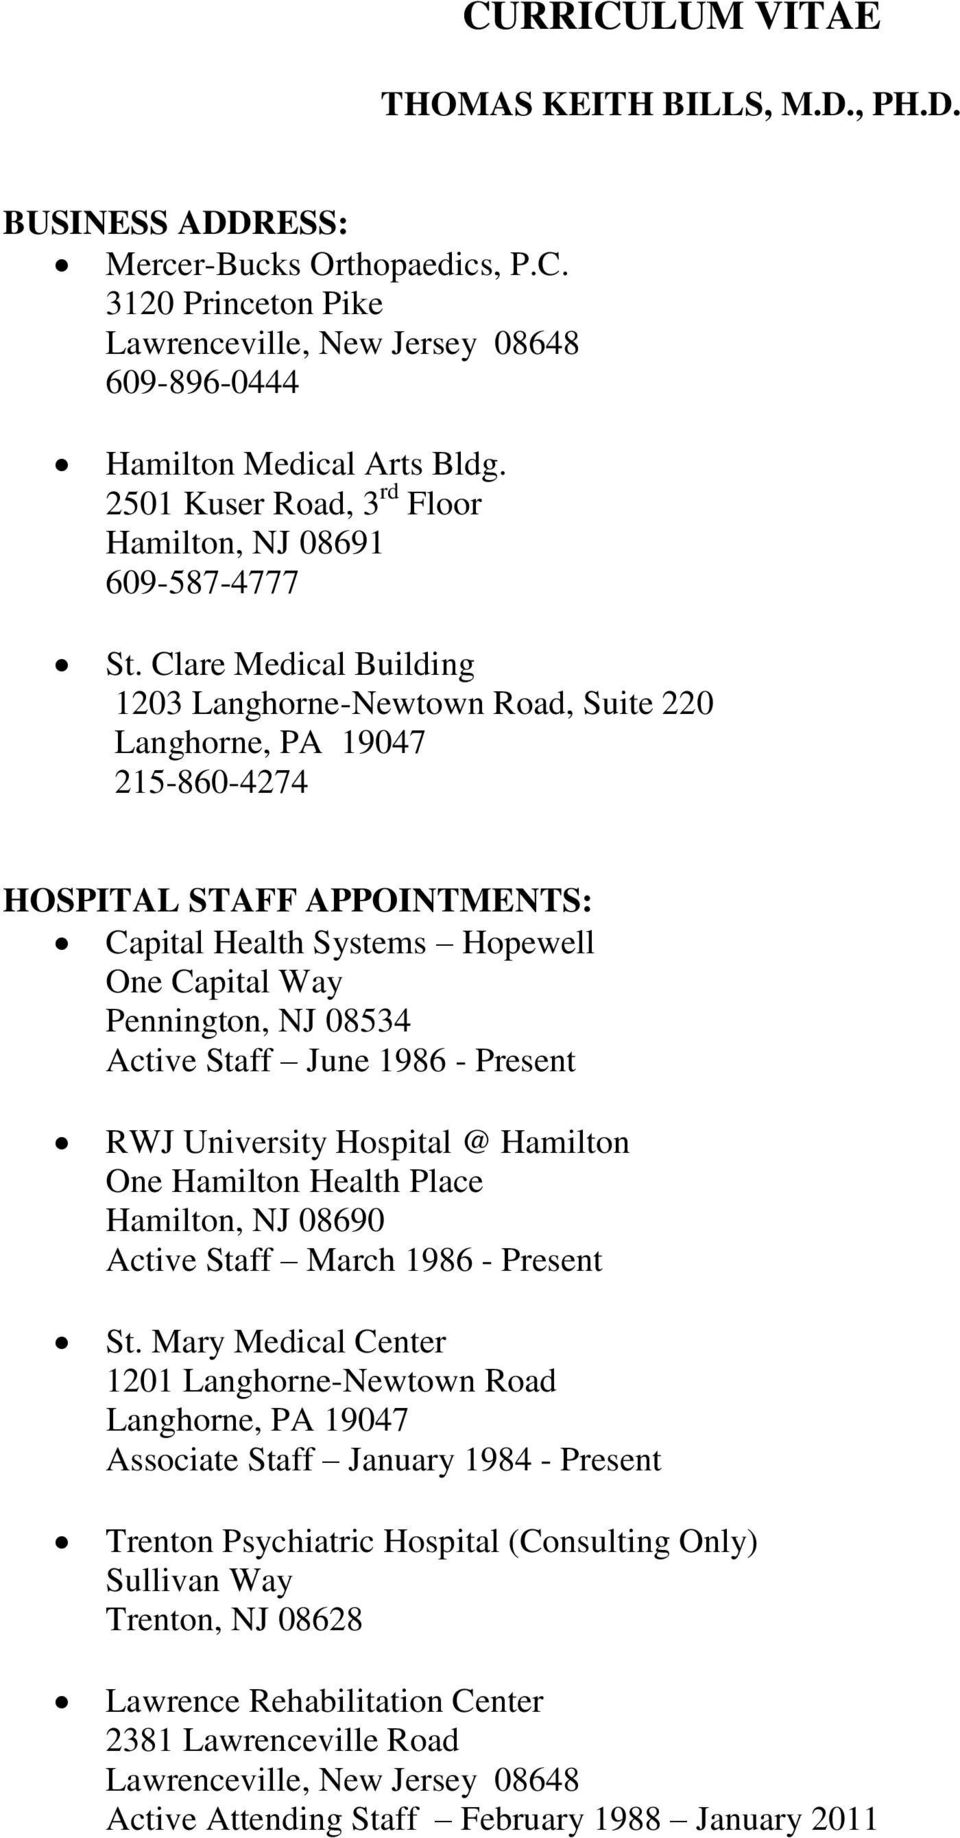 Clare Medical Building 1203 Langhorne-Newtown Road, Suite 220 Langhorne, PA 19047 215-860-4274 HOSPITAL STAFF APPOINTMENTS: Capital Health Systems Hopewell One Capital Way Pennington, NJ 08534 Active